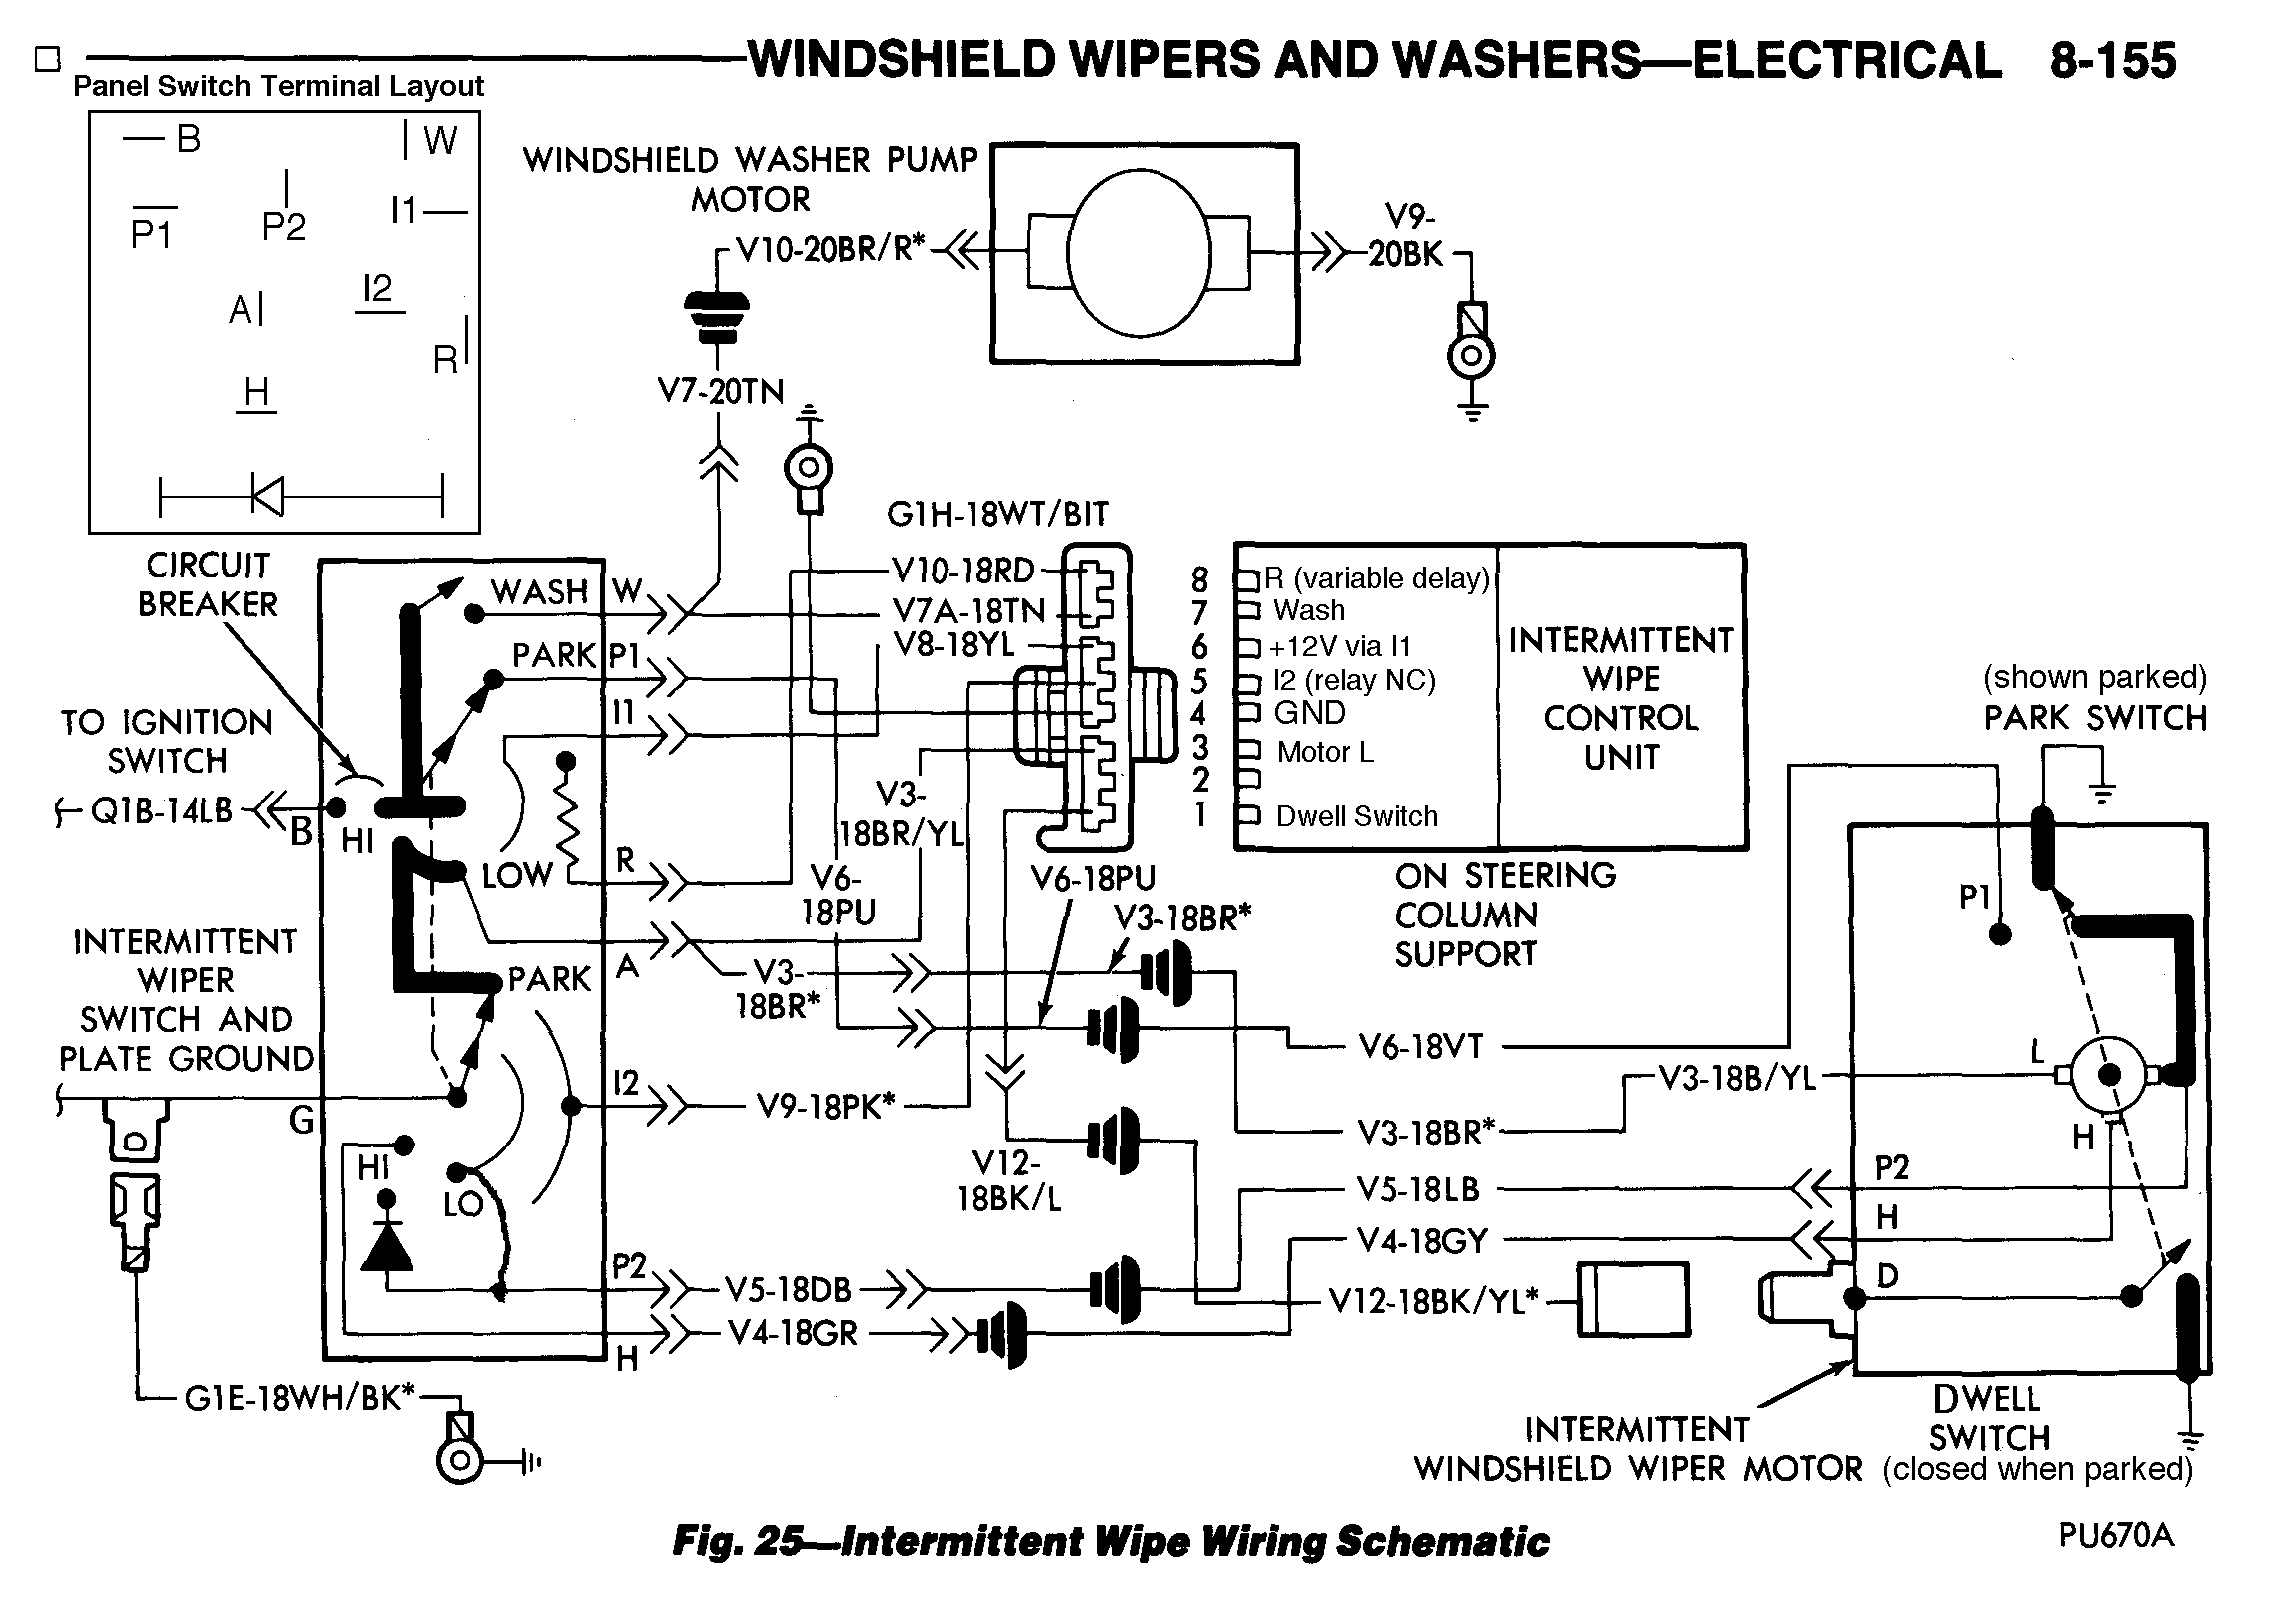 Troubleshooting Windshield Wiper Motor Wiring Diagram Gm Chrysler Intermittent Delay Fix